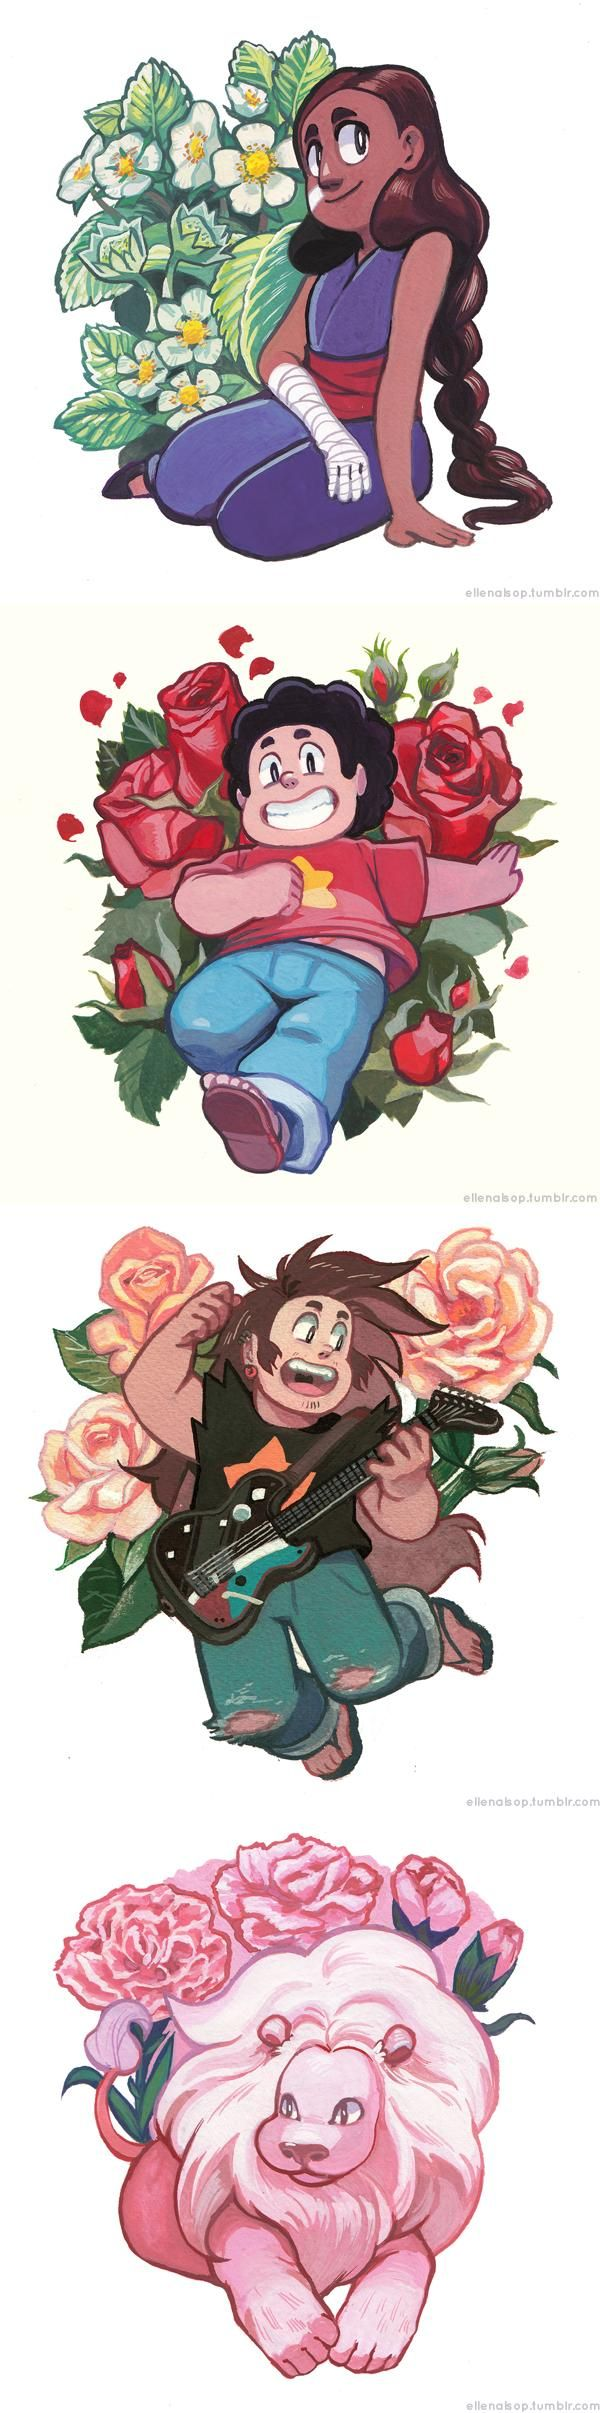 Steven Universe is a series that shows a view of family and relationships and strength that I aspire to. This fanart pays homage to botanical illustration.